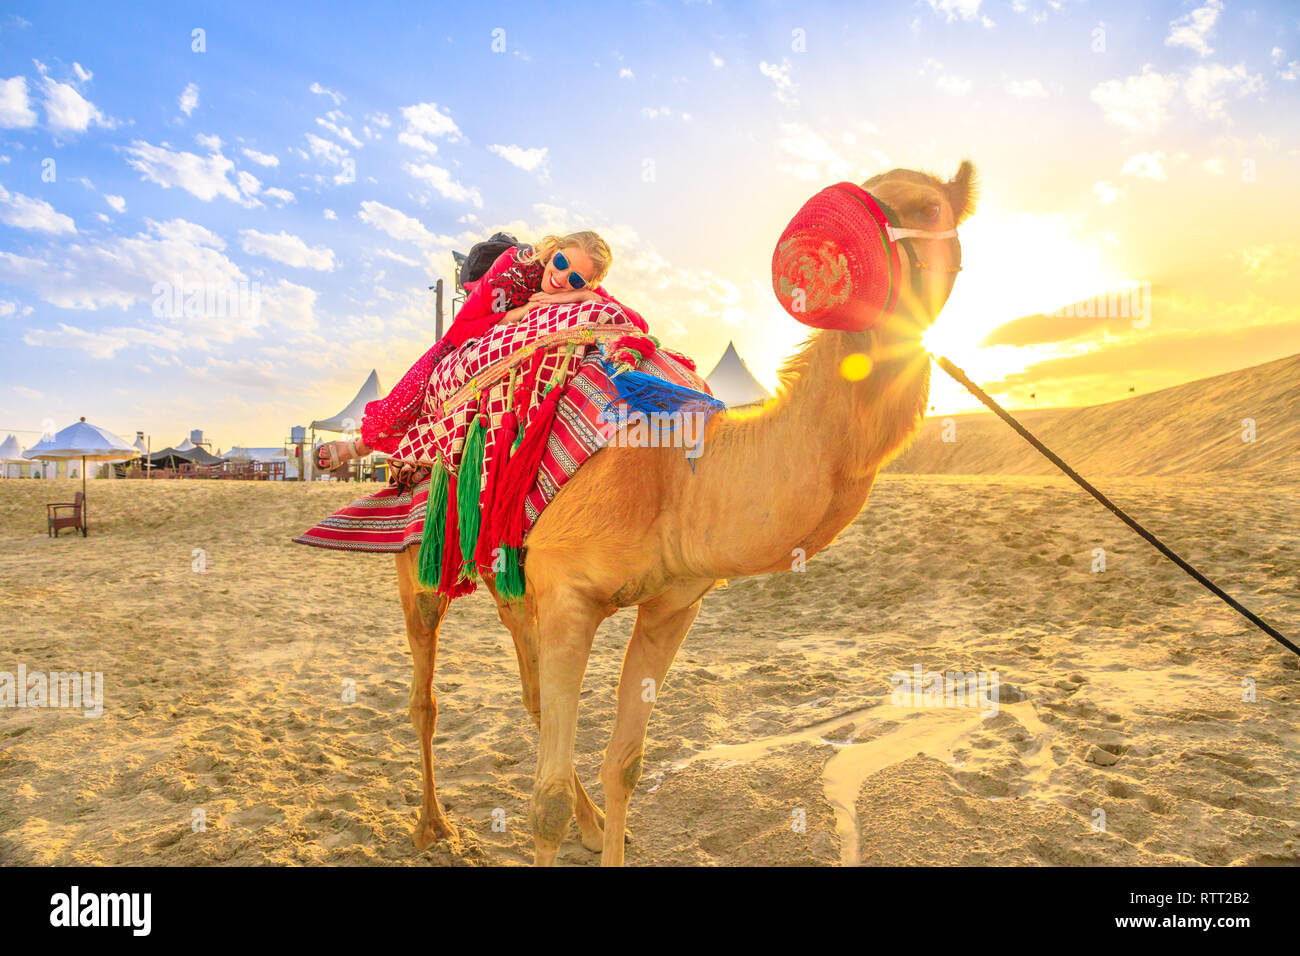 Happy woman lying over a camel on sand dunes of beach at Khor al Udaid in Persian Gulf, southern Qatar. Caucasian tourist enjoys camel ride at sunset - Stock Image